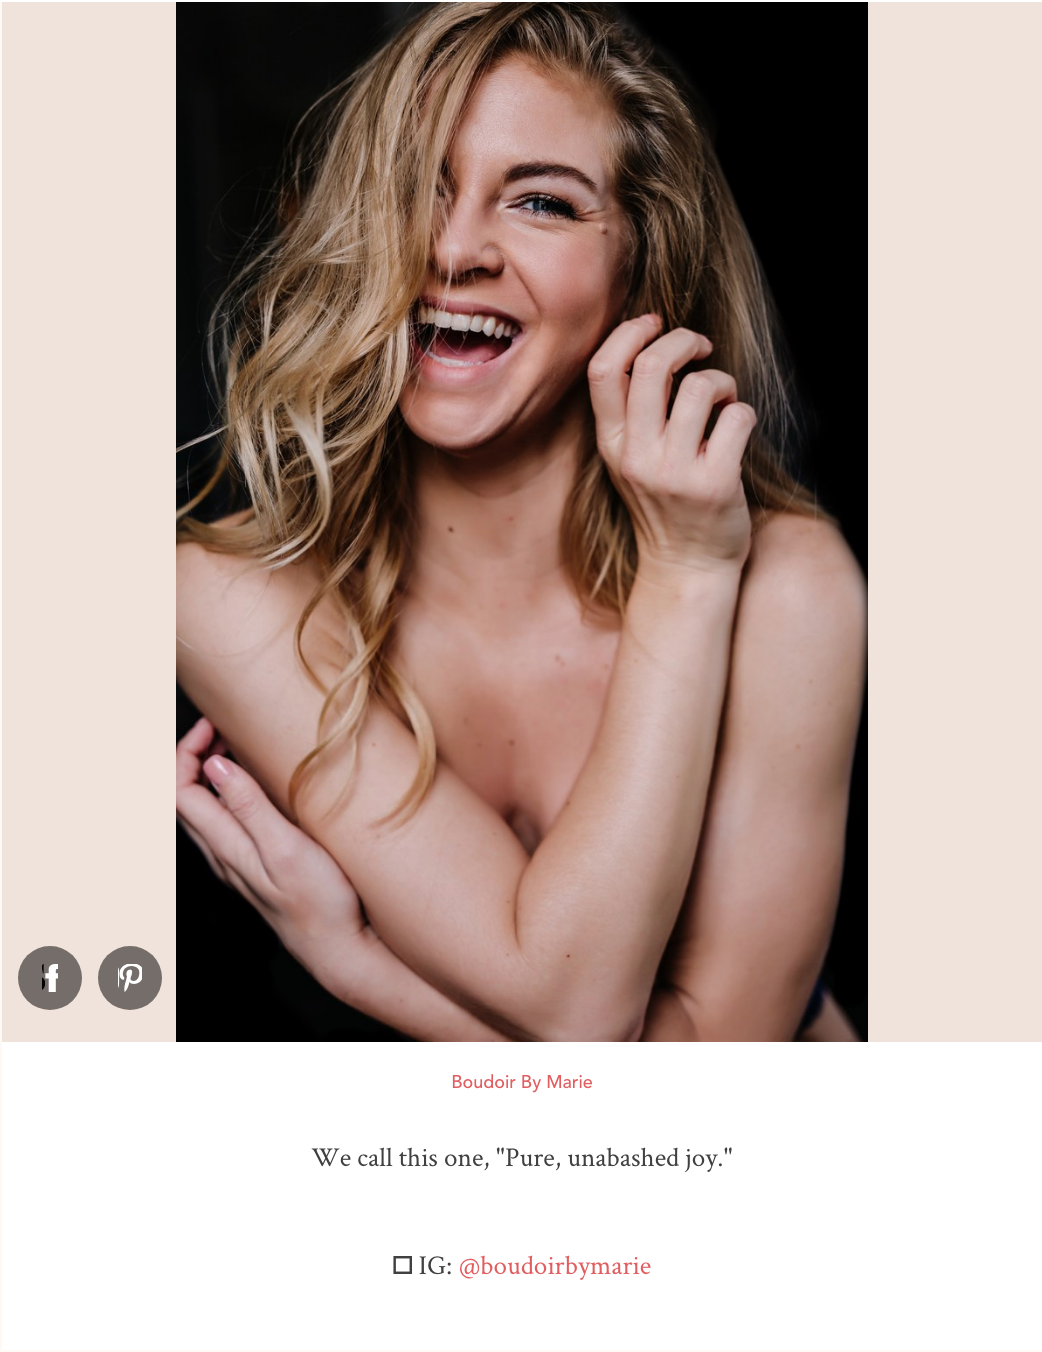 BoudoirbyMarie-Brides-Featured-Photographer-3.png